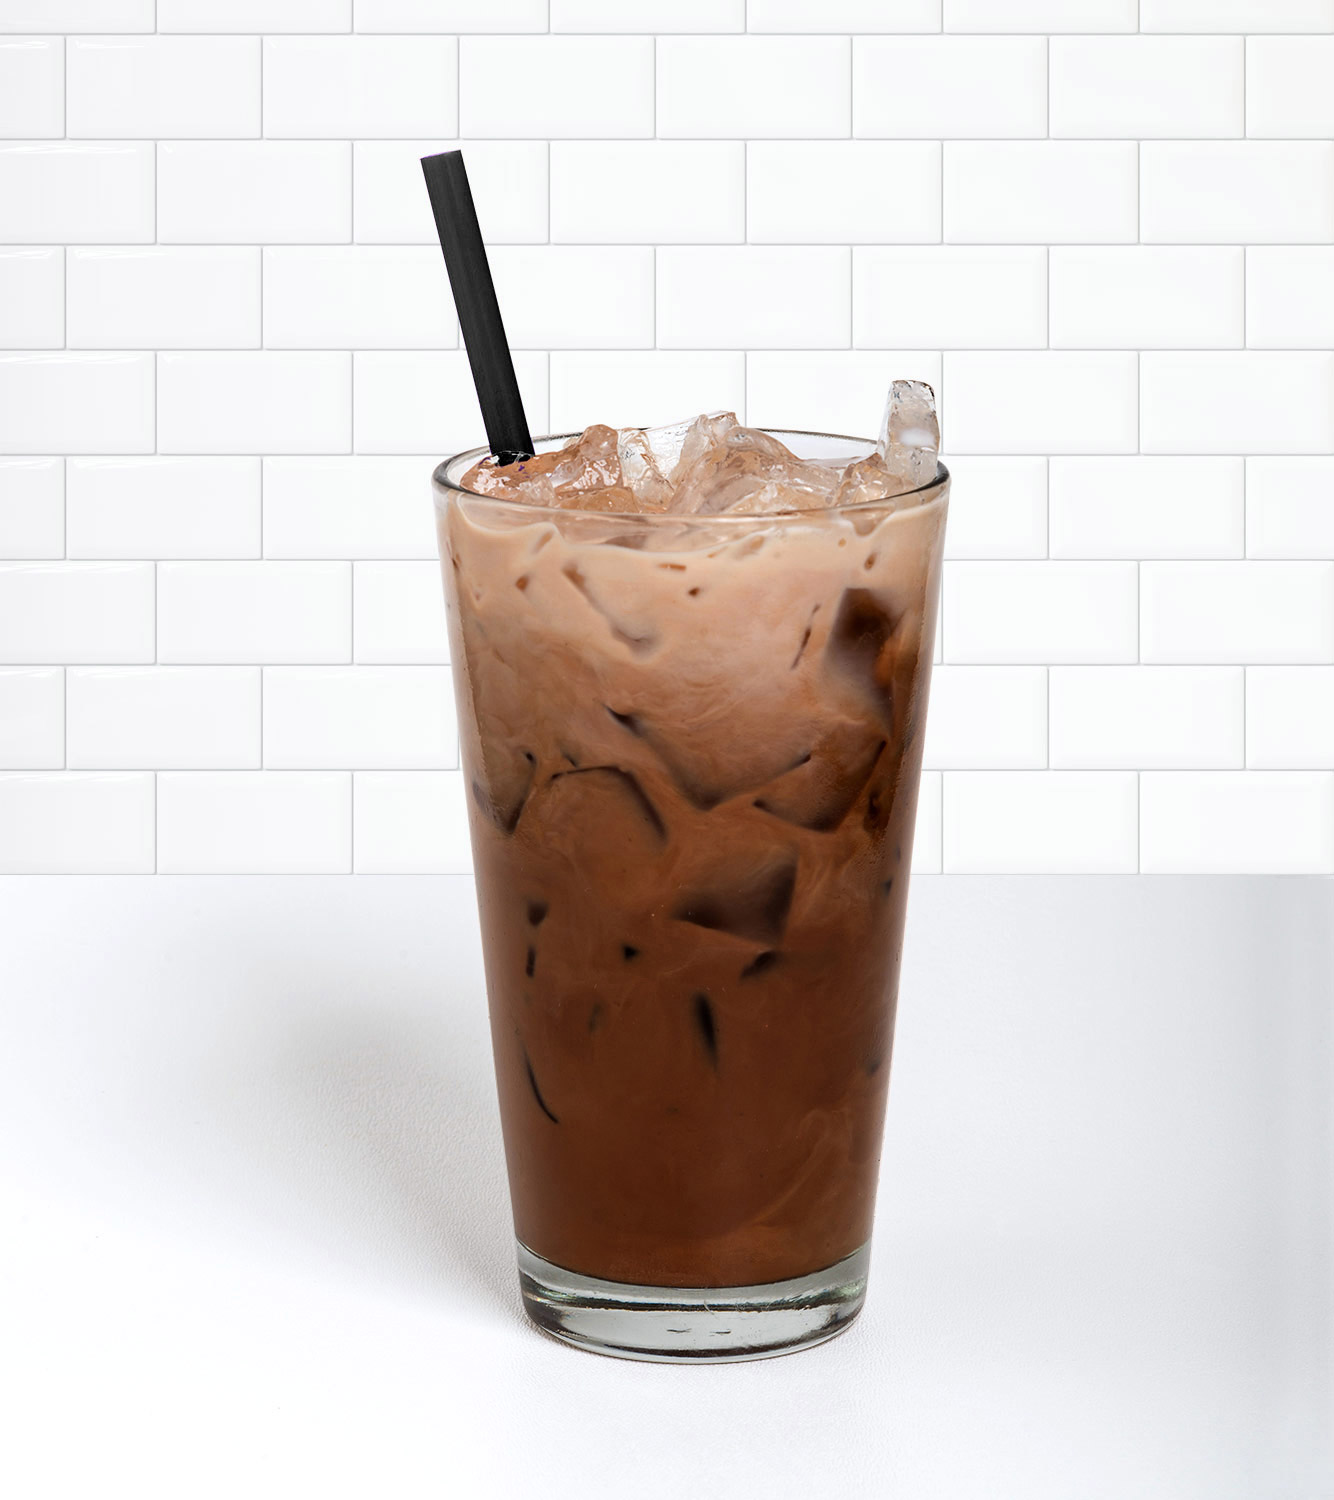 Iced Mocha in a beverage container